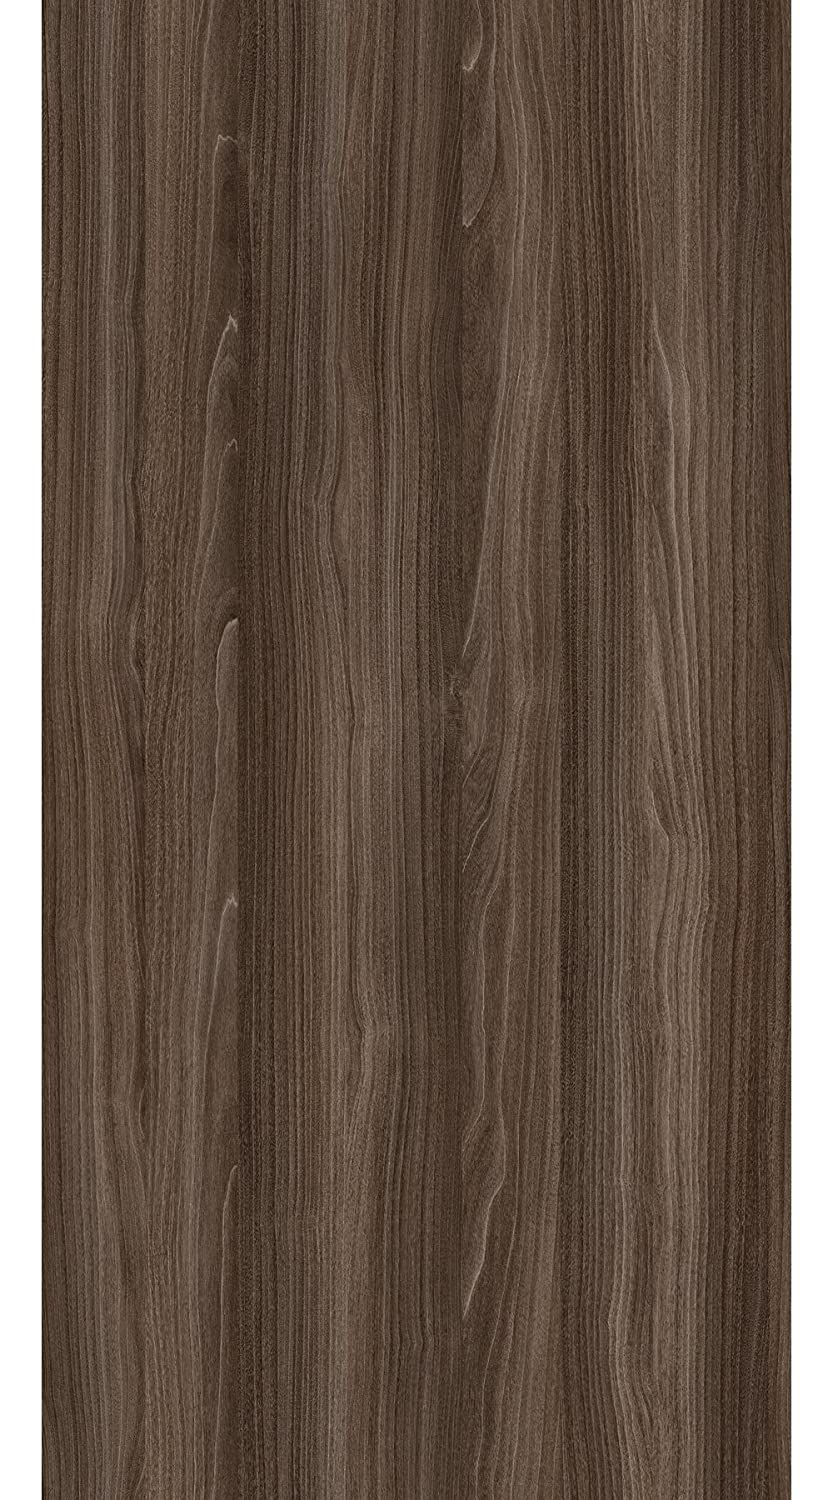 d-c-fix® Sticky Back Plastic (self adhesive vinyl film) Woodgrain Wyoming Maple Mocca 45cm x 2m 346-0612 Konrad Hornschuch AG